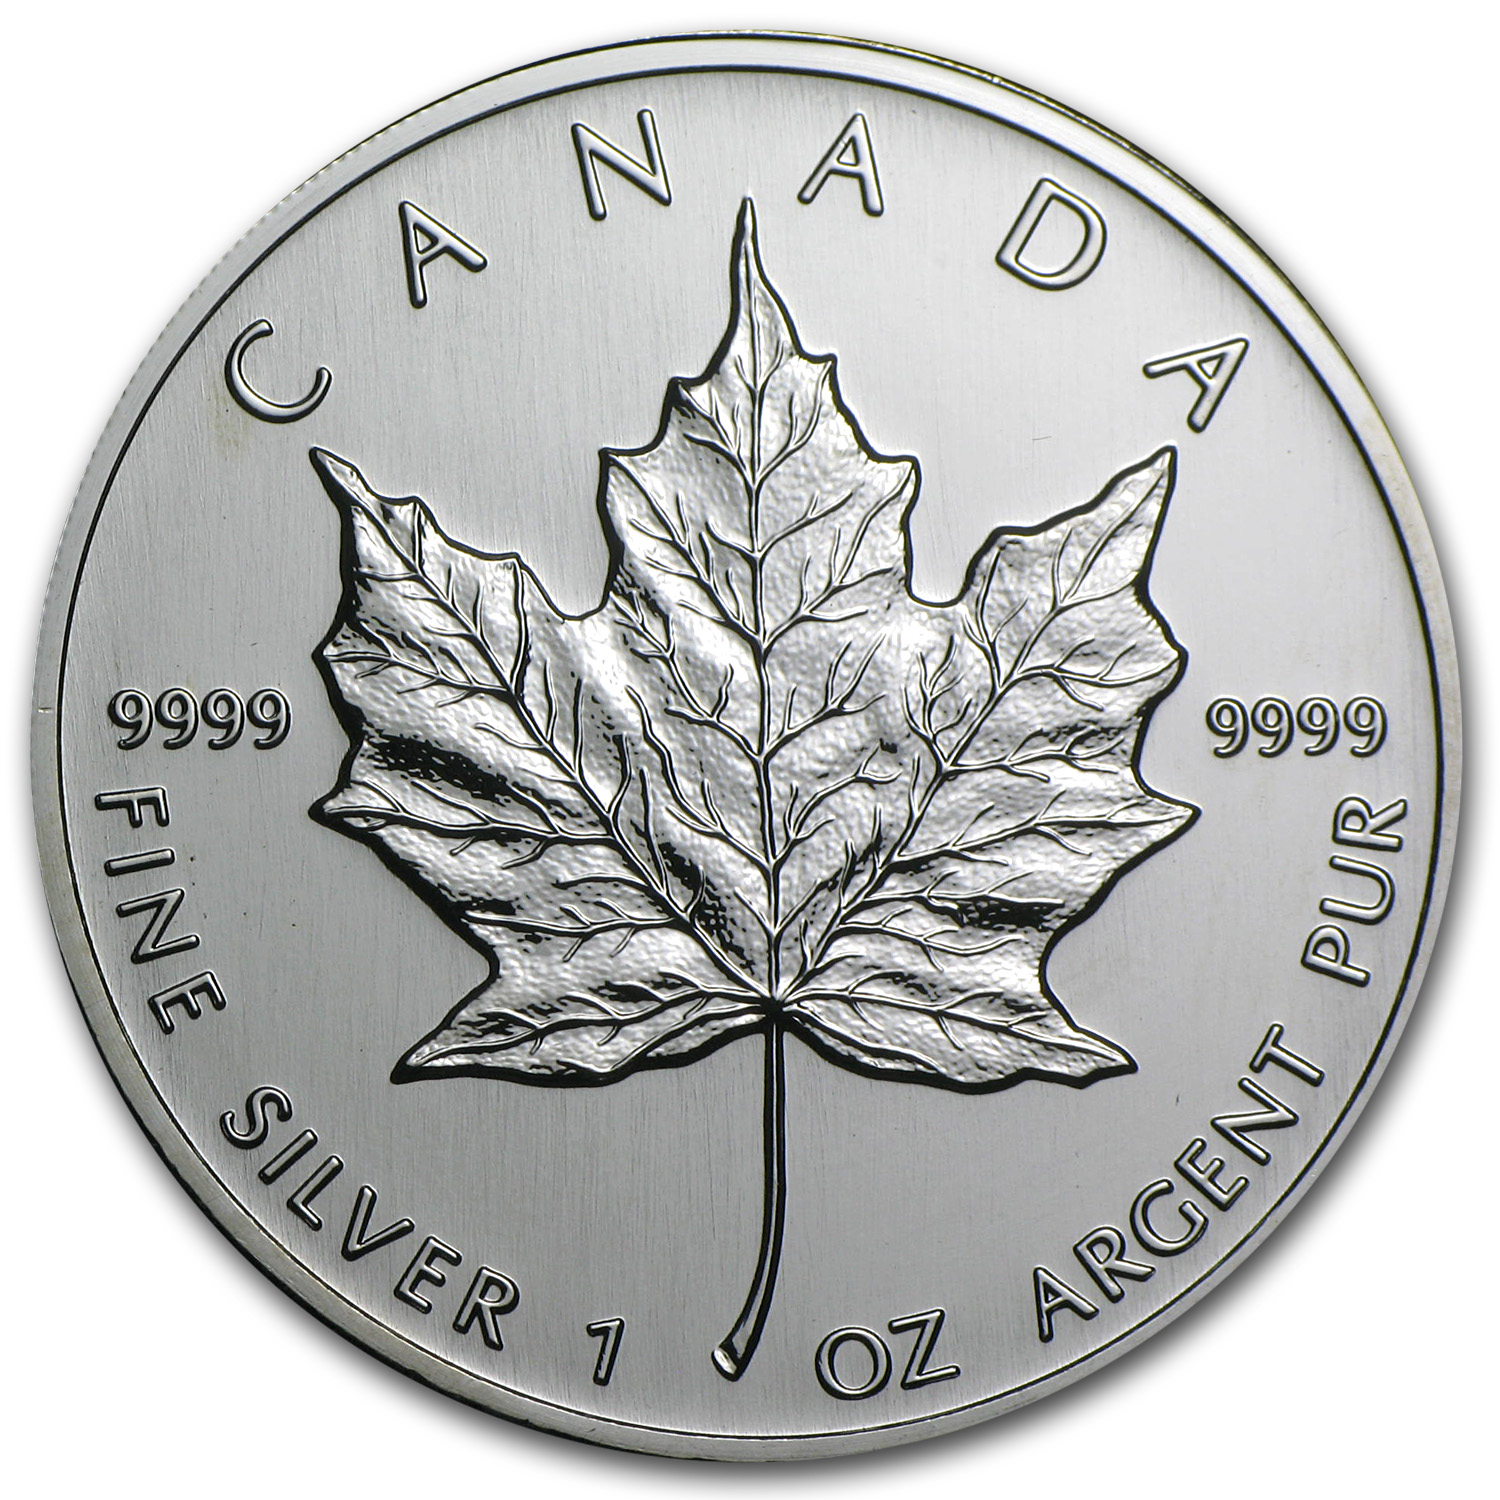 2002 Canada 1 oz Silver Maple Leaf BU